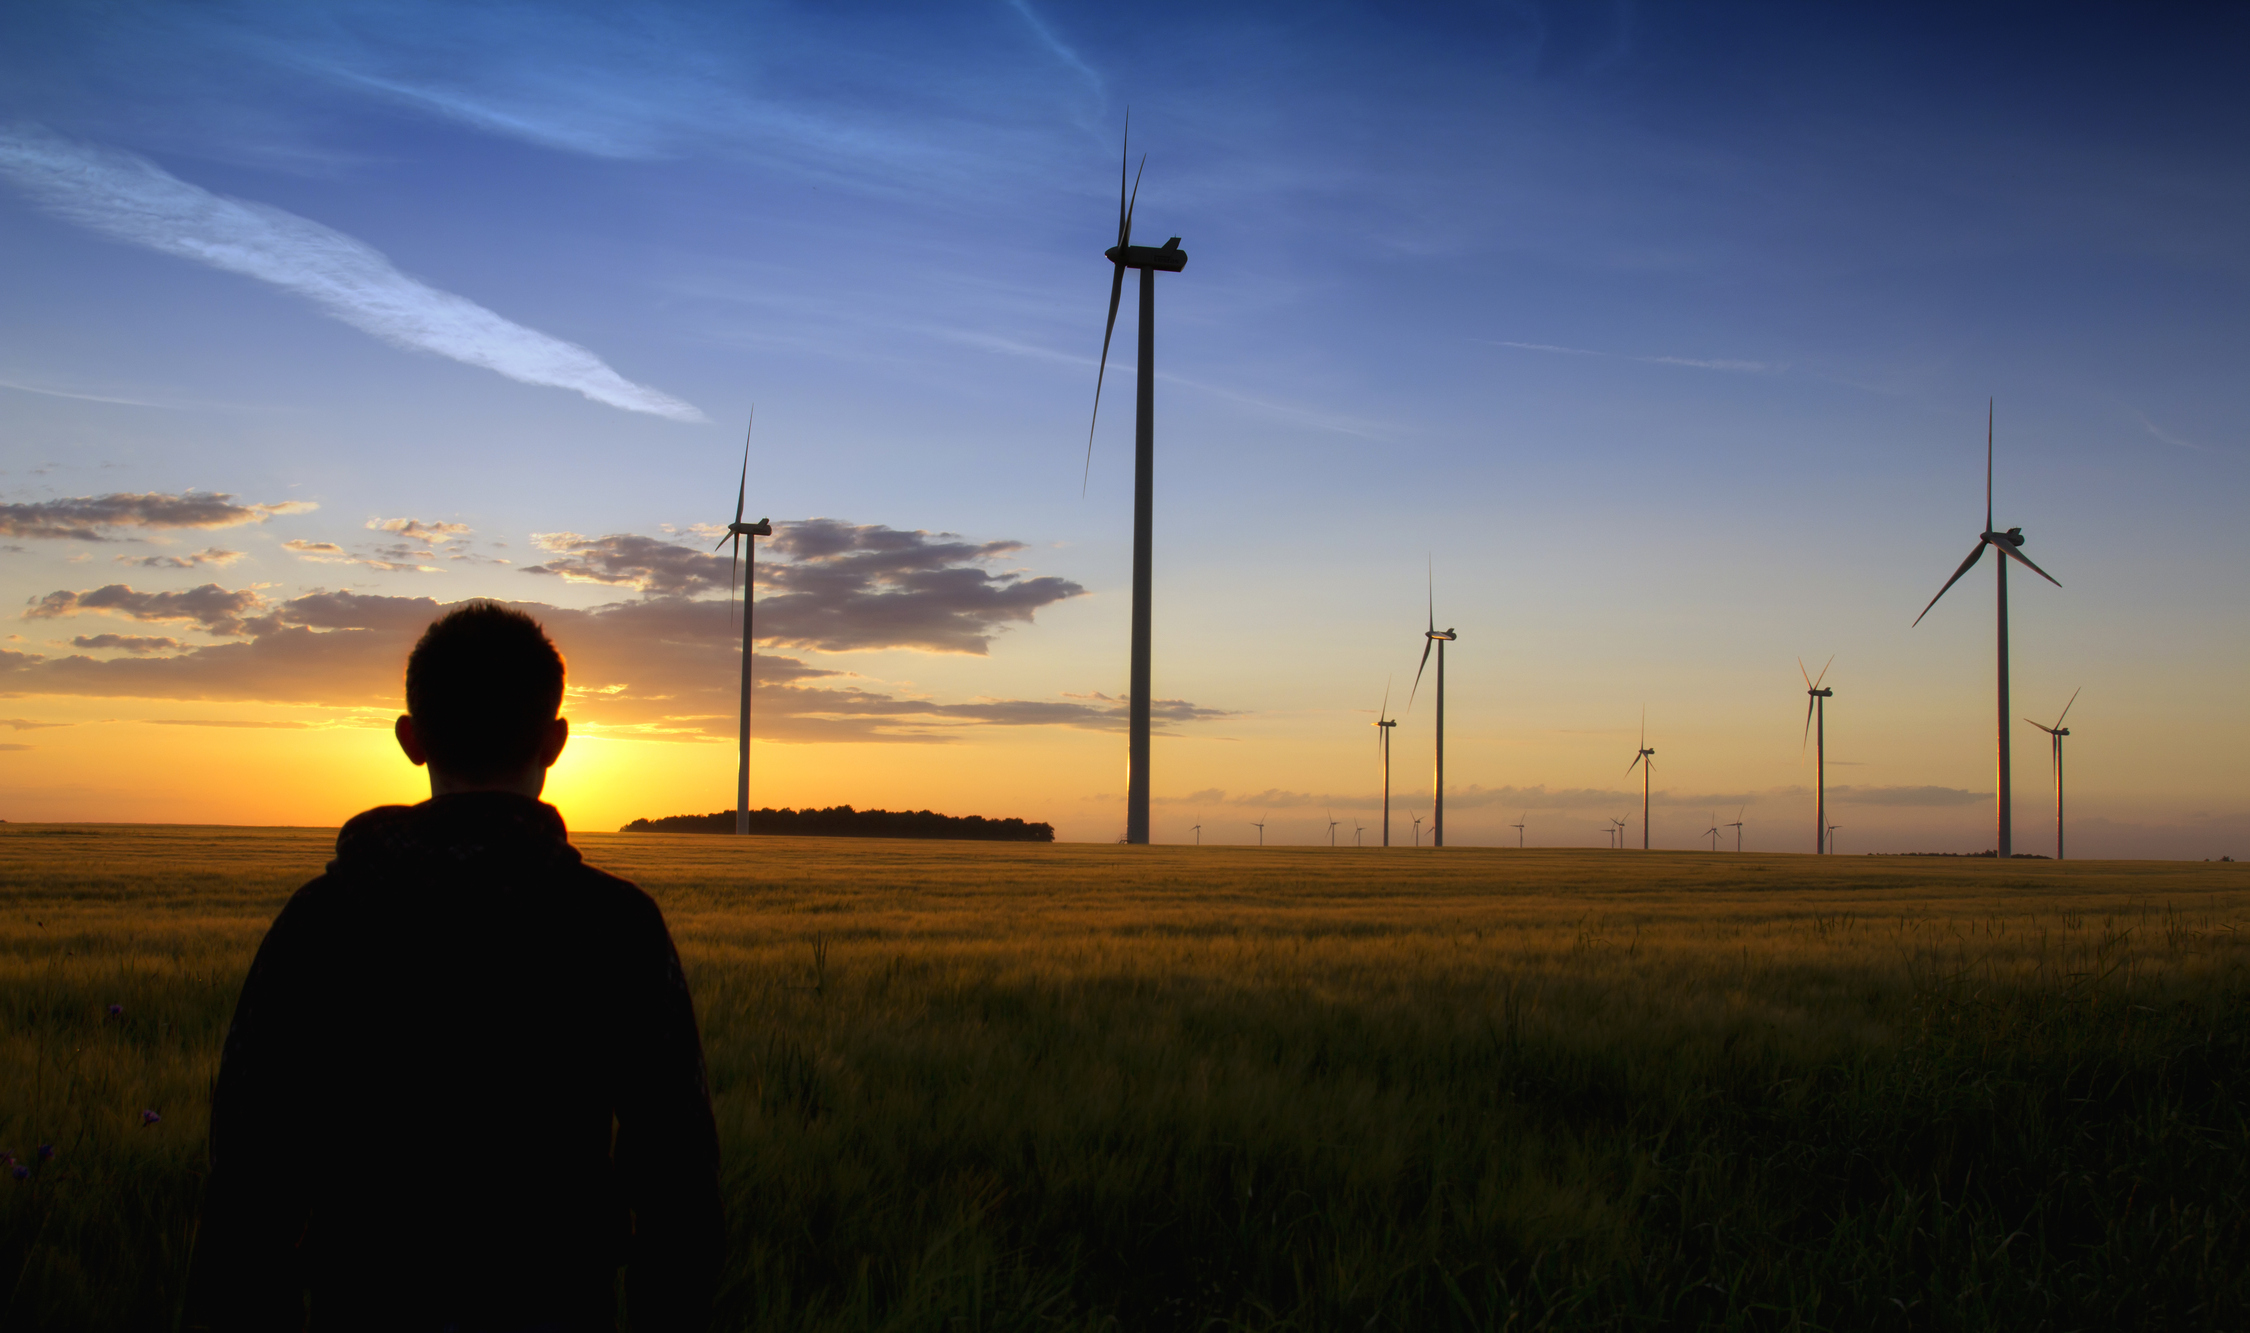 Person overlooking wind turbines for Mindsailing energy practice area